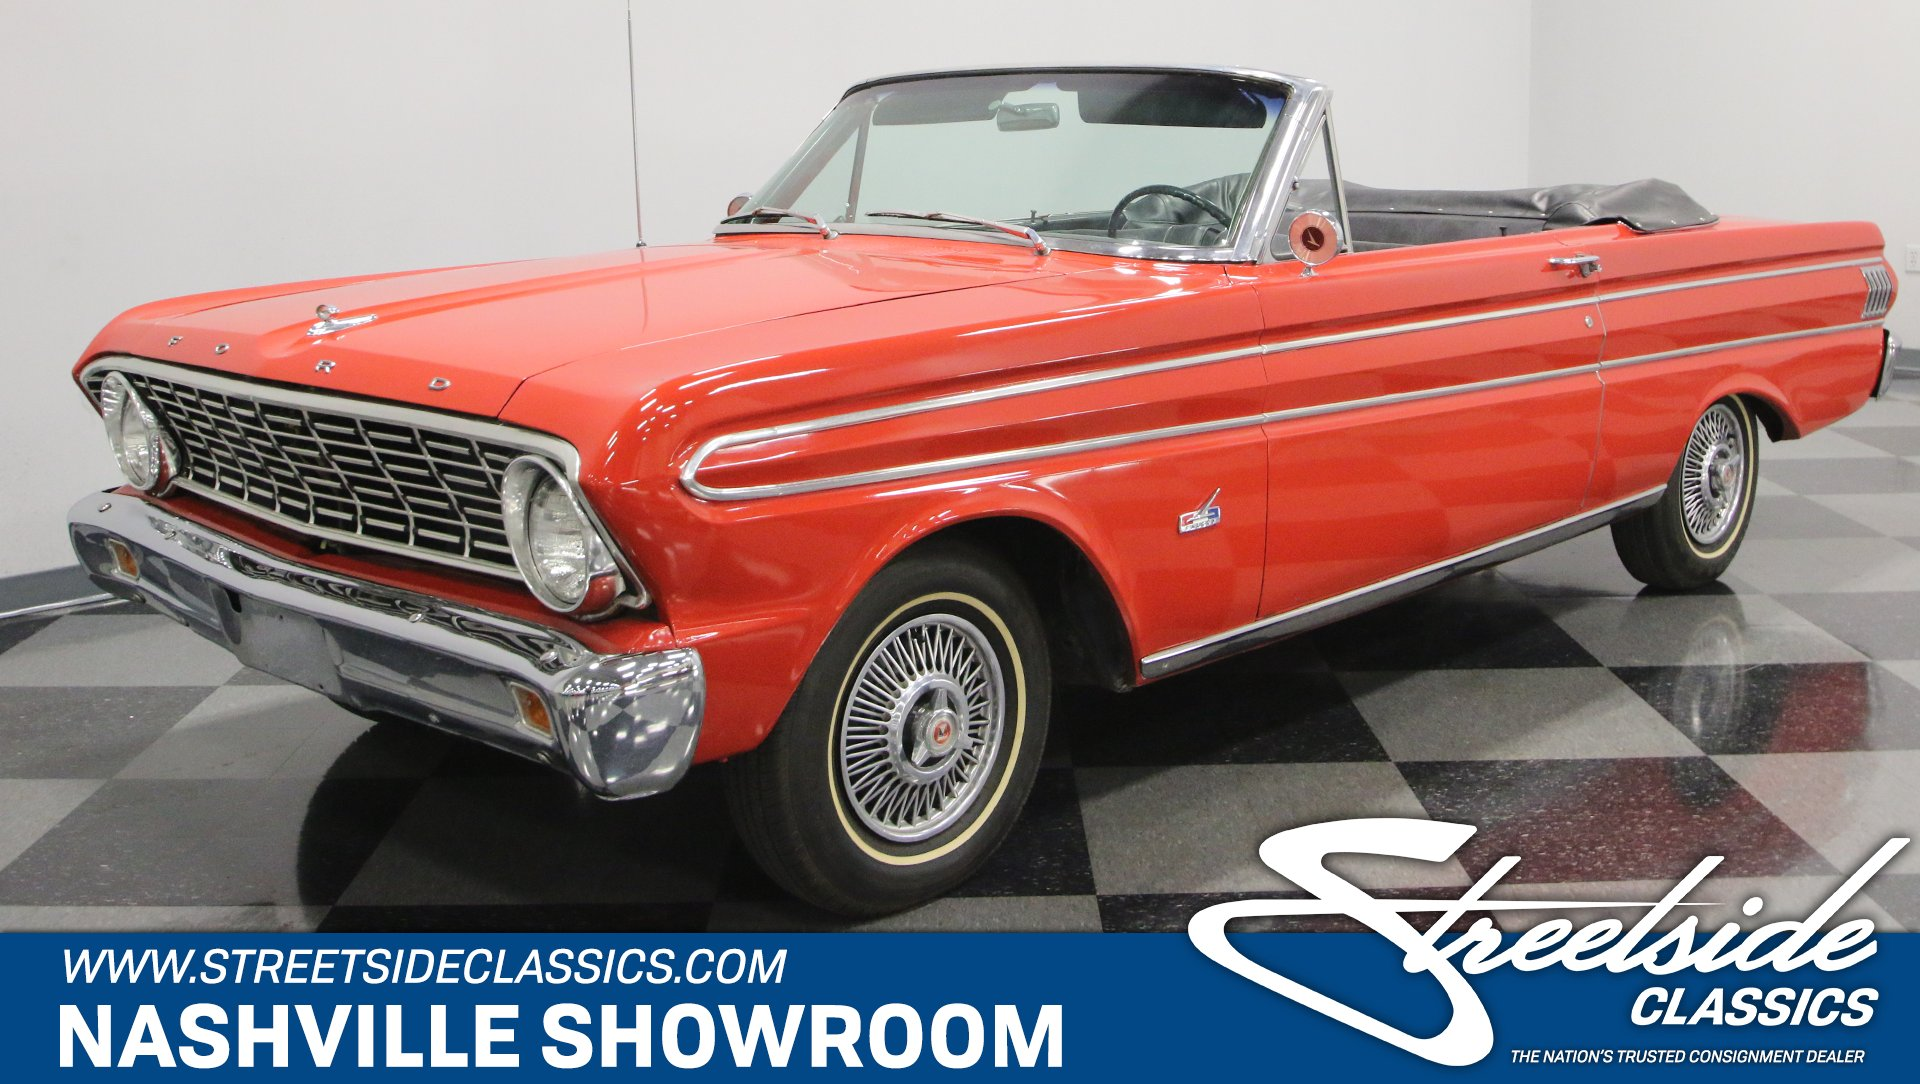 1964 Ford Falcon Convertible Futura For Sale 83631 Mcg